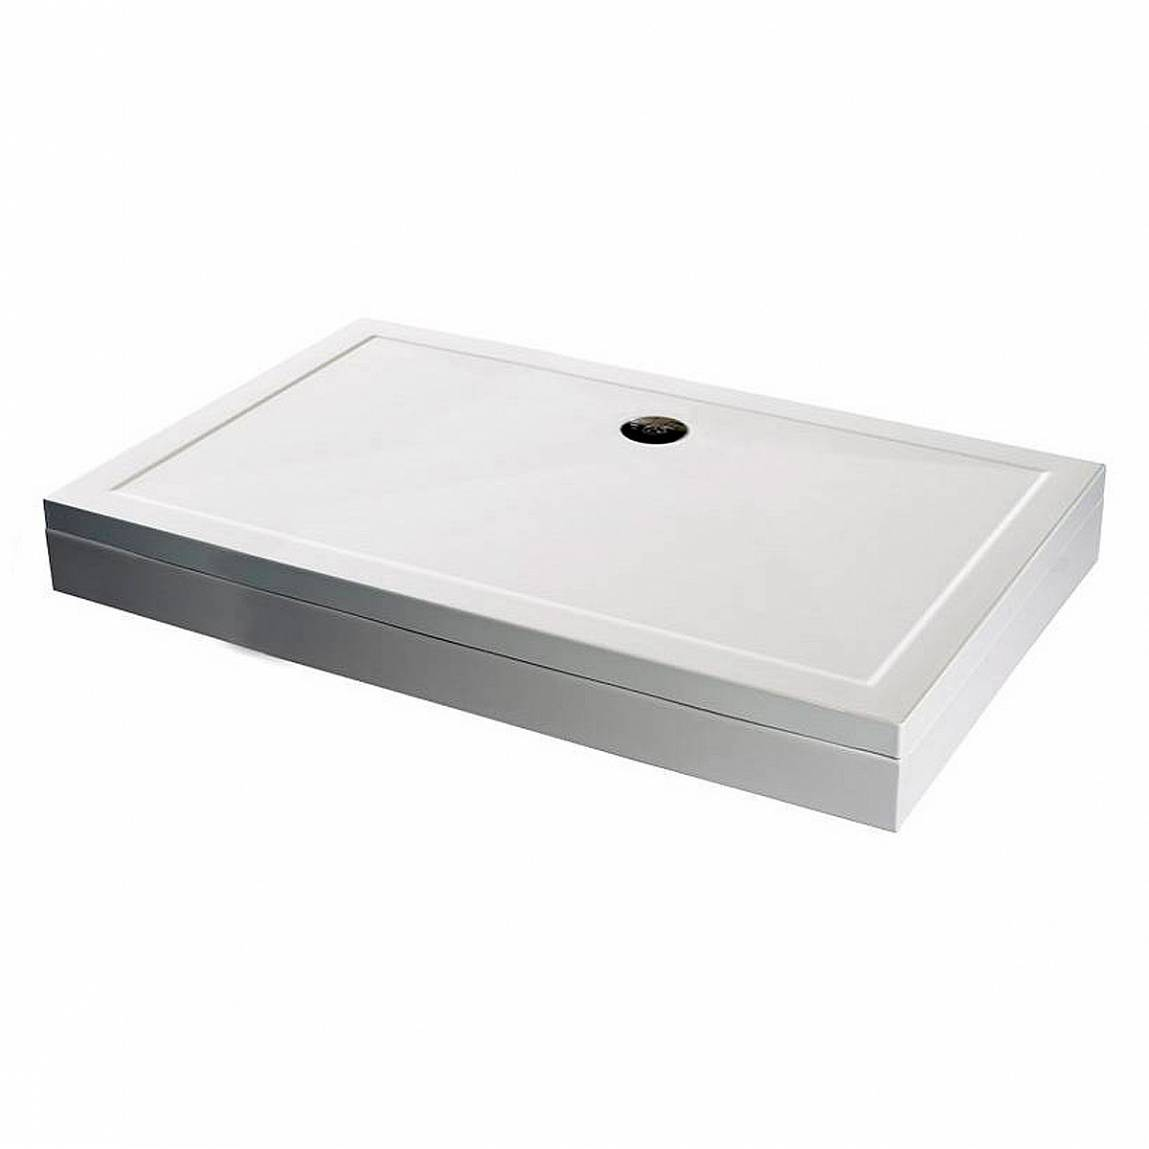 Image of Rectangular Stone Shower Tray & Riser Kit 1200 x 800